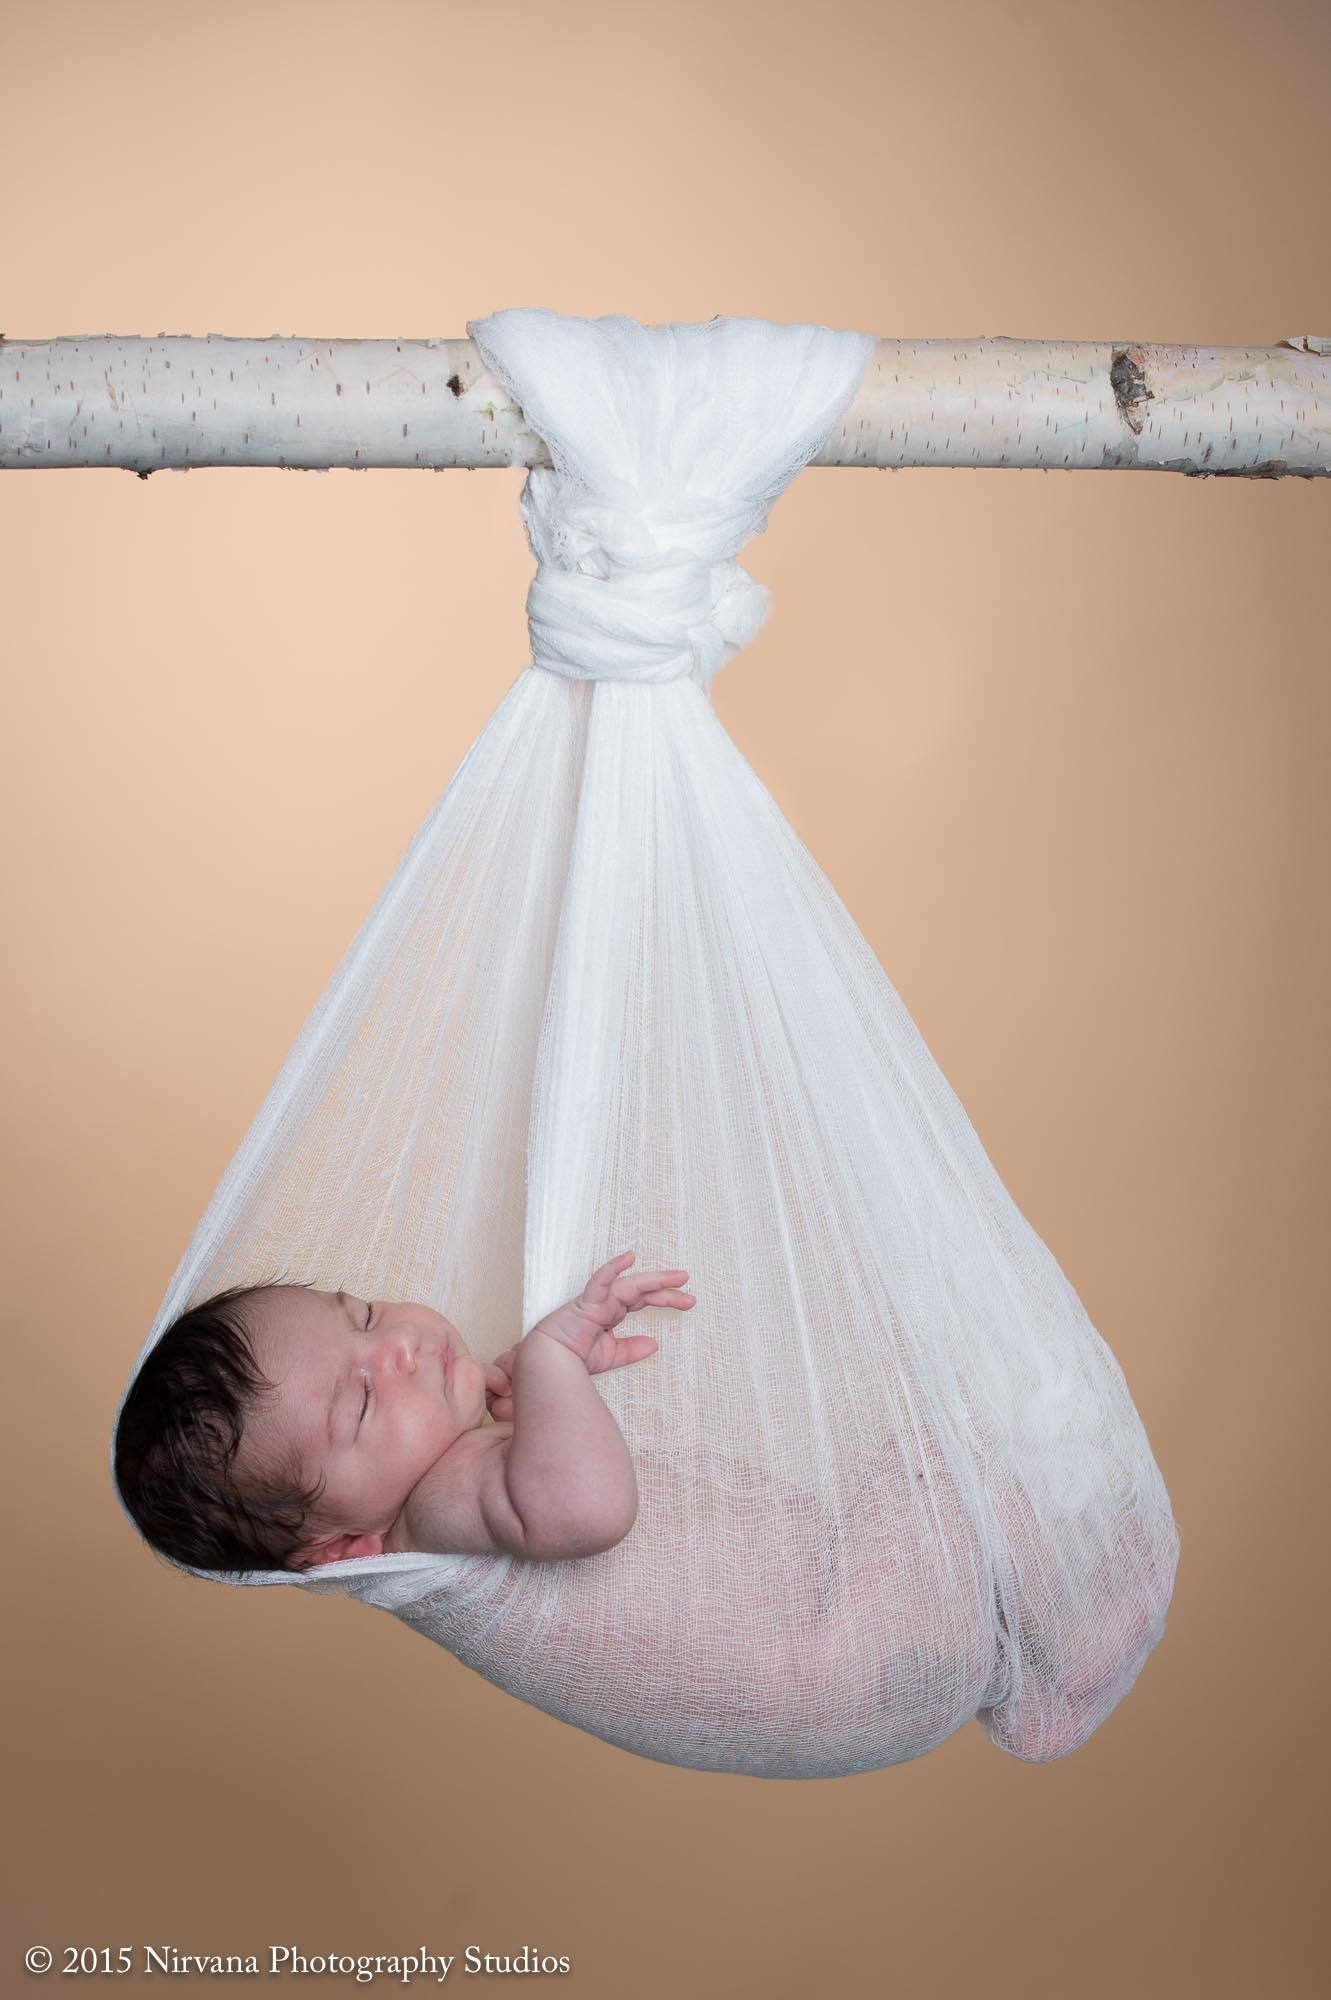 Baby Mohammad sleeping soundly in a white net-cloth swing